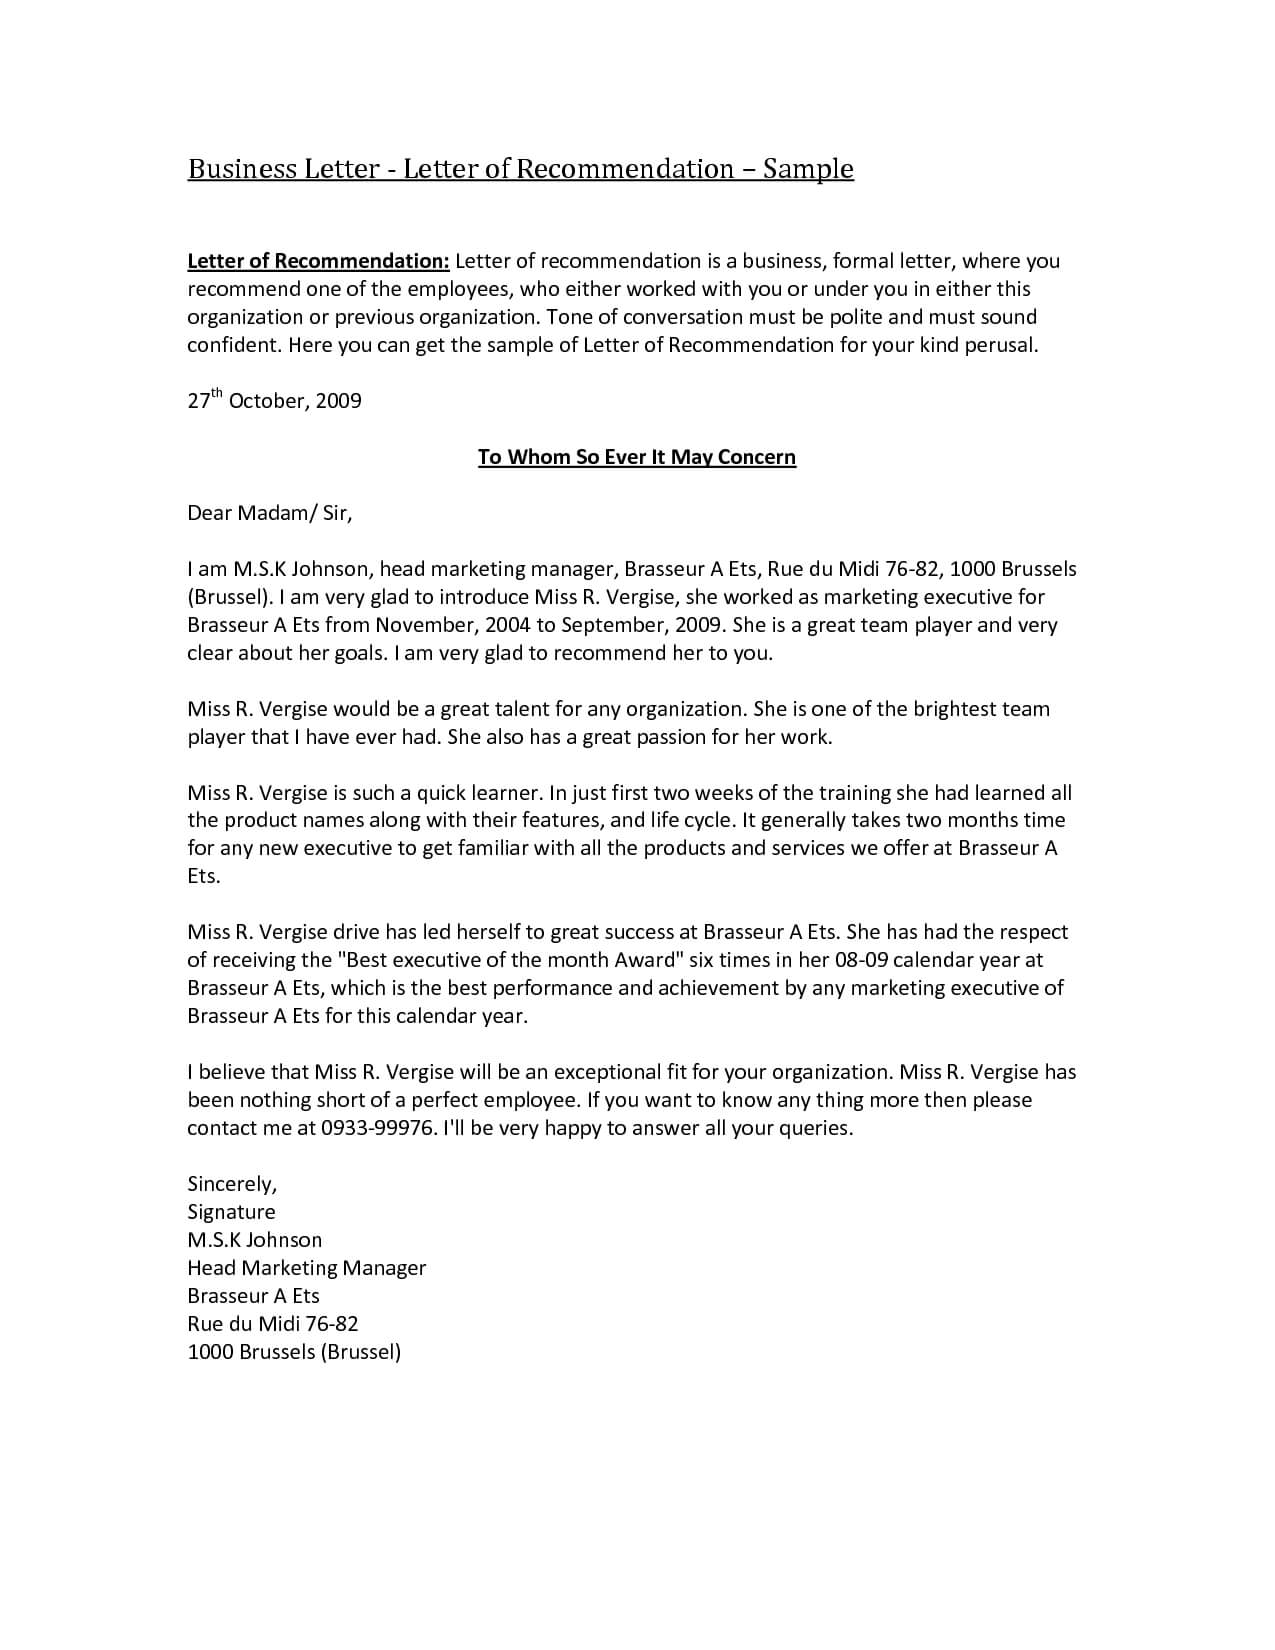 Business Reference Letter Template Word Collection | Letter in Business Reference Template Word